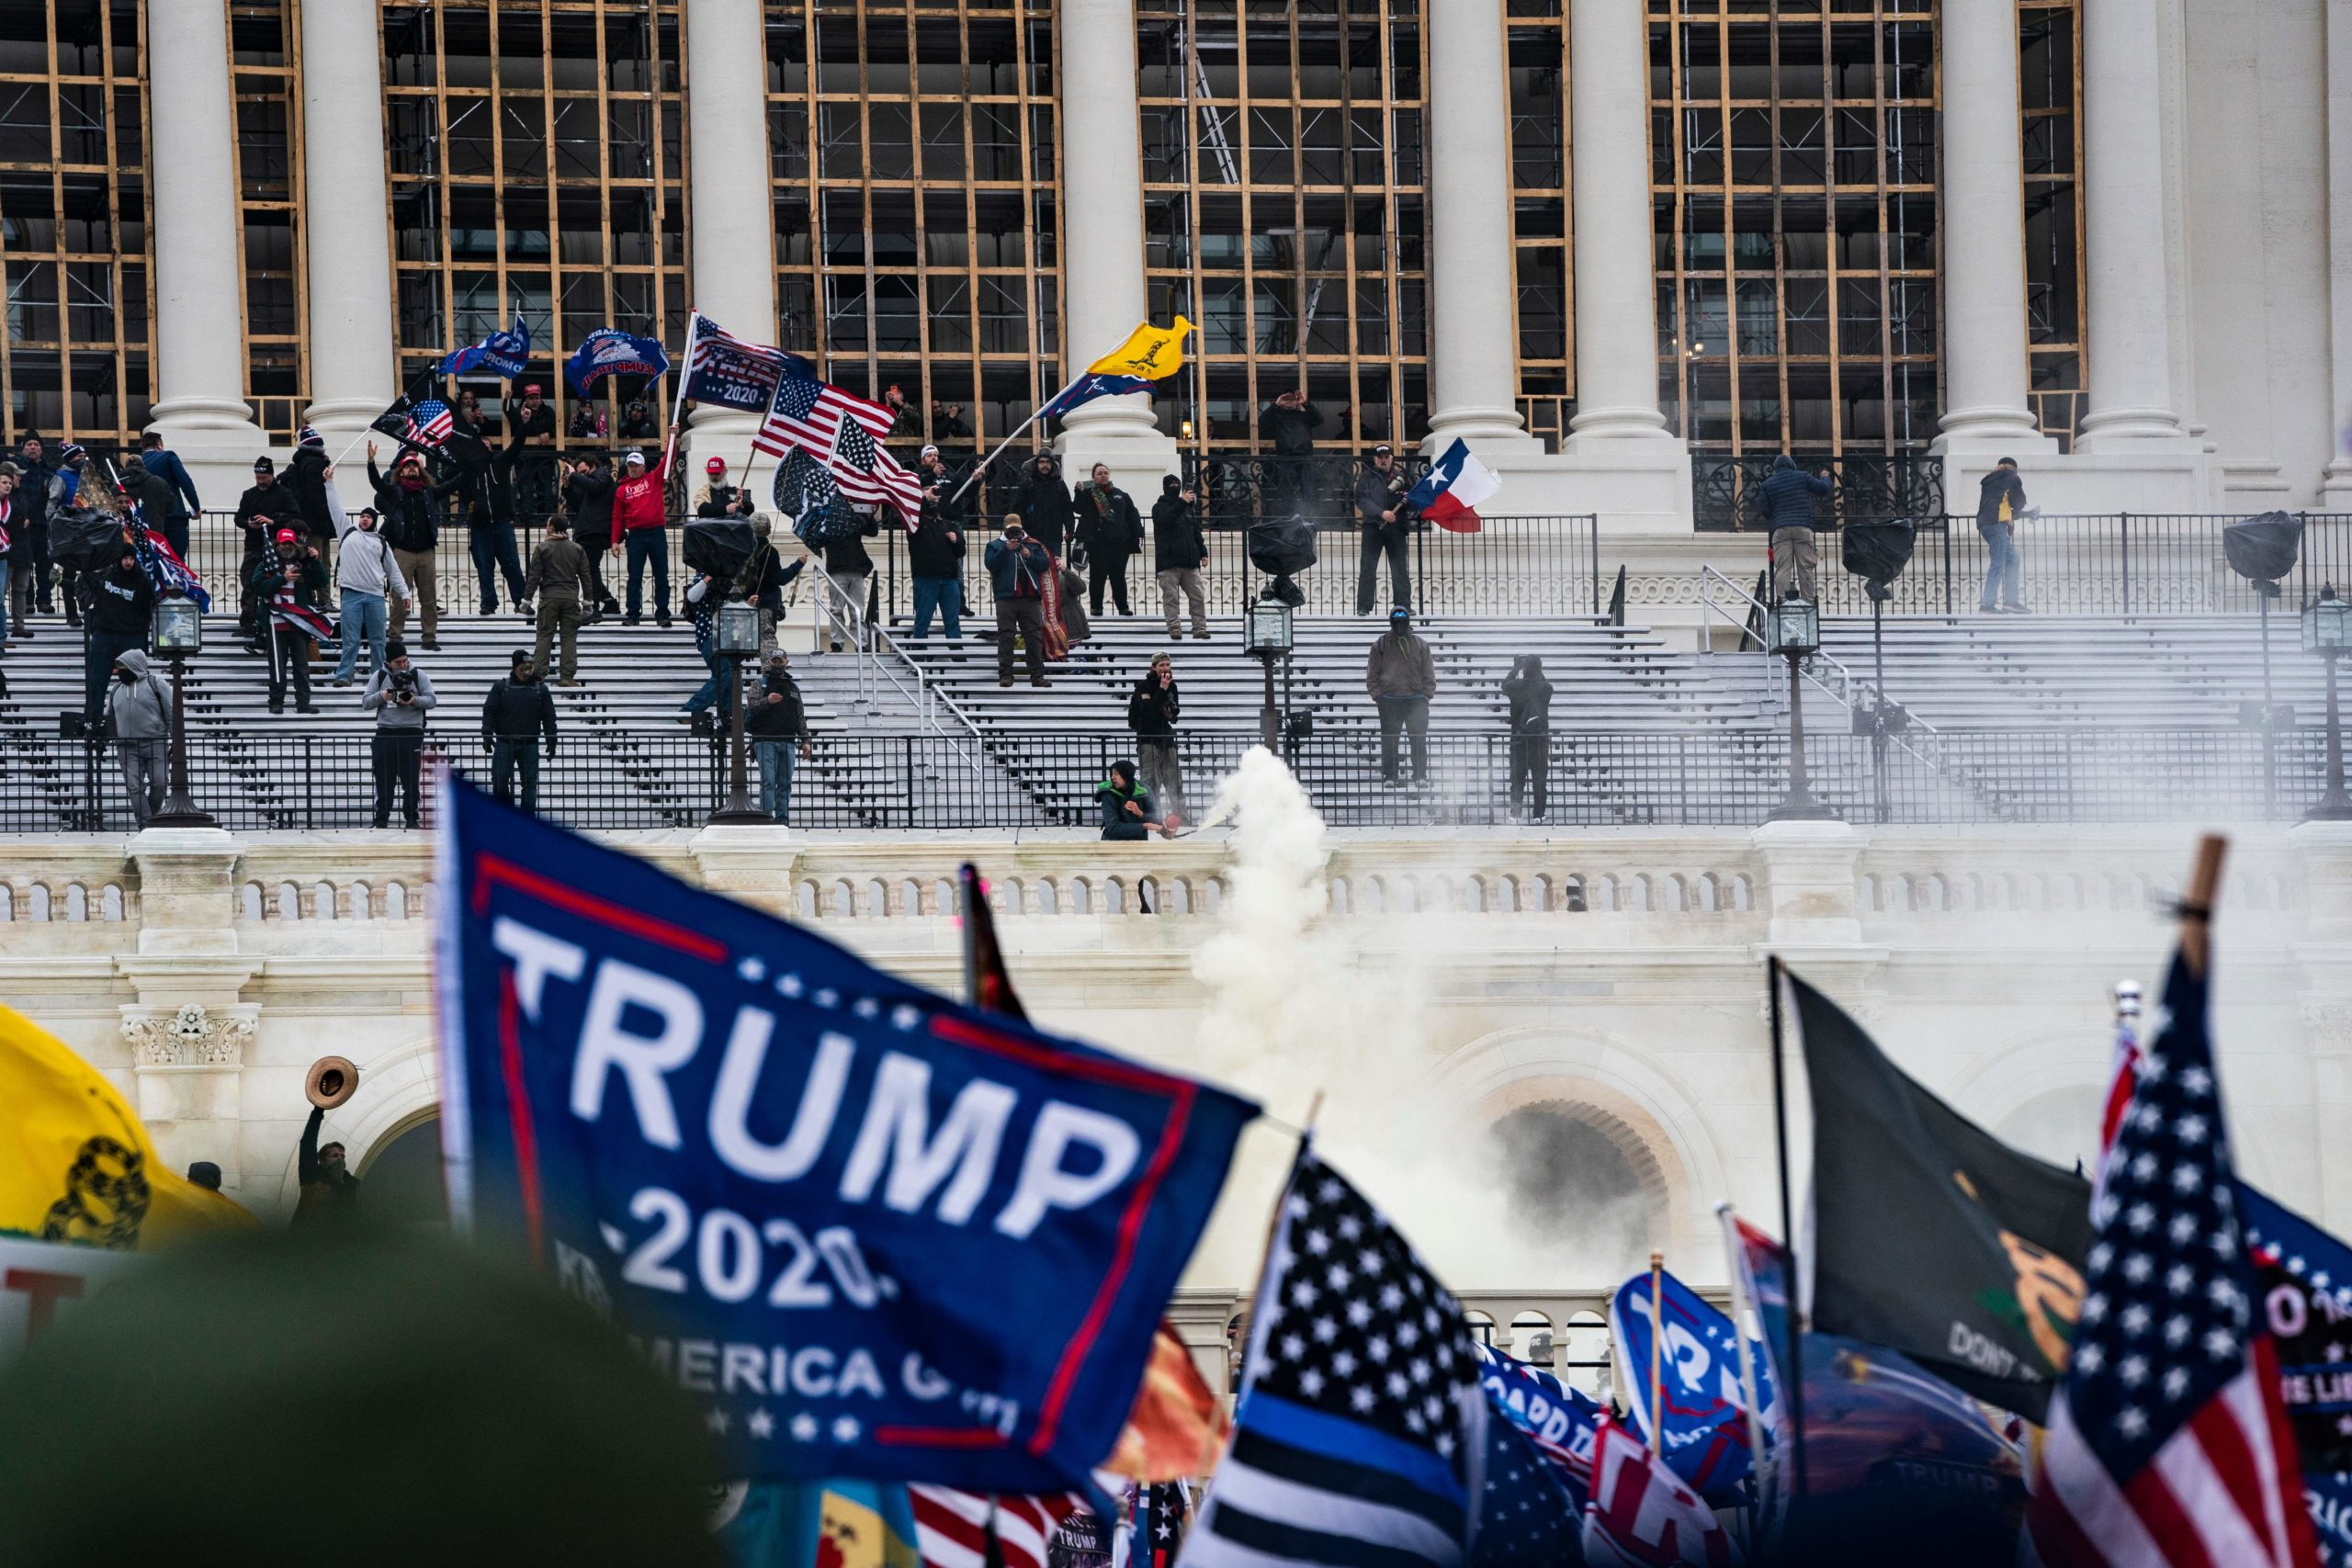 Supporters of US President Donald Trump clash with the US Capitol police during a riot at the US Capitol on January 6, 2021, in Washington, DC. - Donald Trump's supporters stormed a session of Congress held January 6 to certify Joe Biden's election win, triggering unprecedented chaos and violence at the heart of American democracy and accusations the president was attempting a coup. (Photo by ALEX EDELMAN / AFP) (Photo by ALEX EDELMAN/AFP via Getty Images)